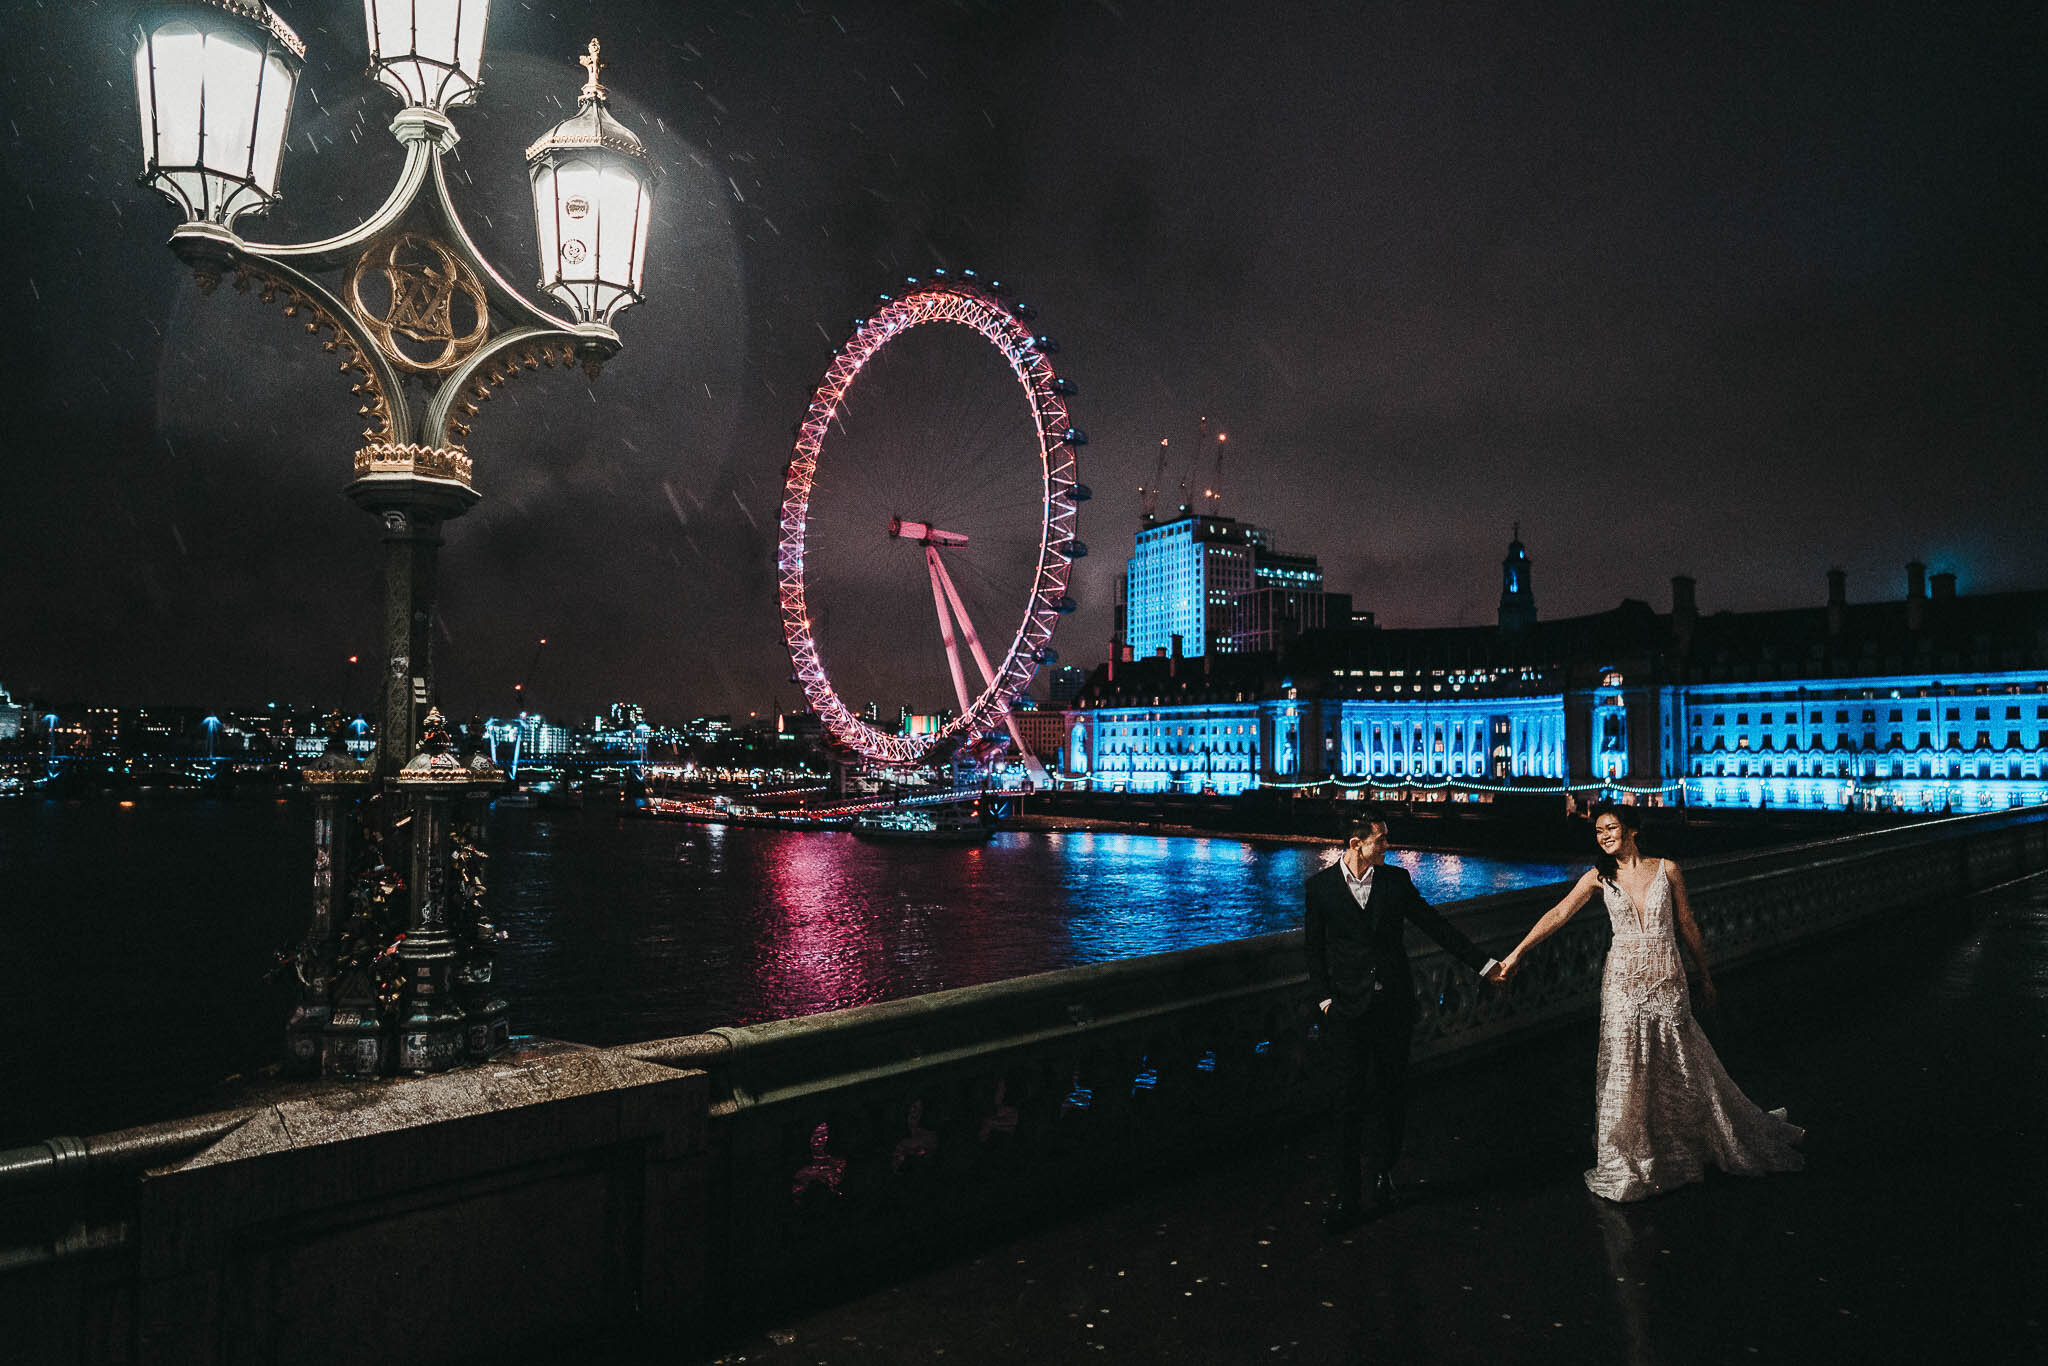 westminster-bridge-with-london-eye-in-the-background